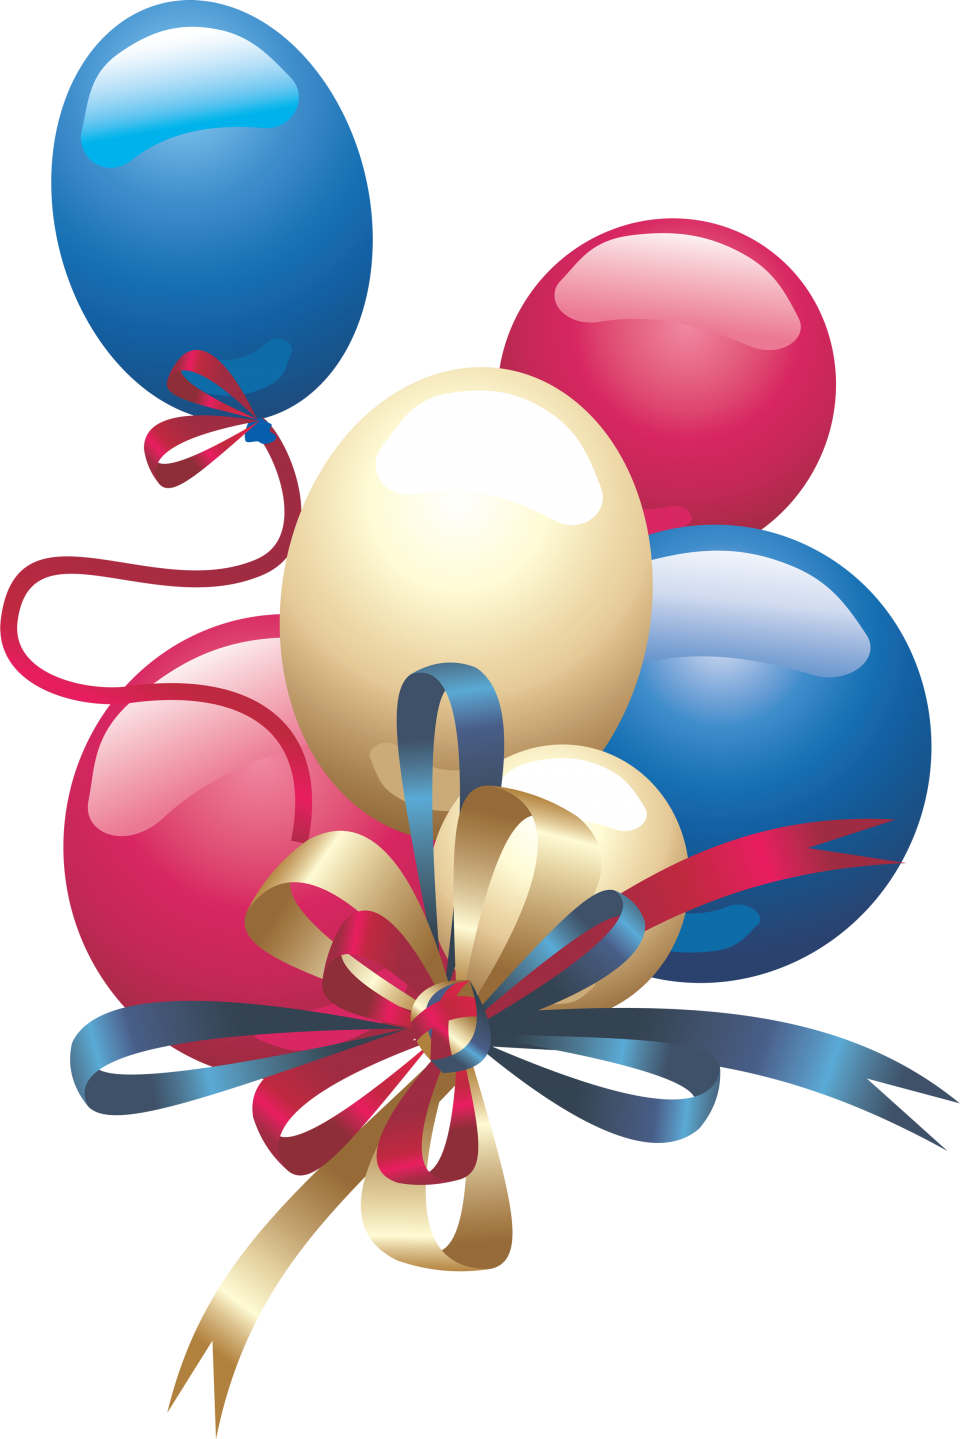 Party Festive Balloons PNG Image